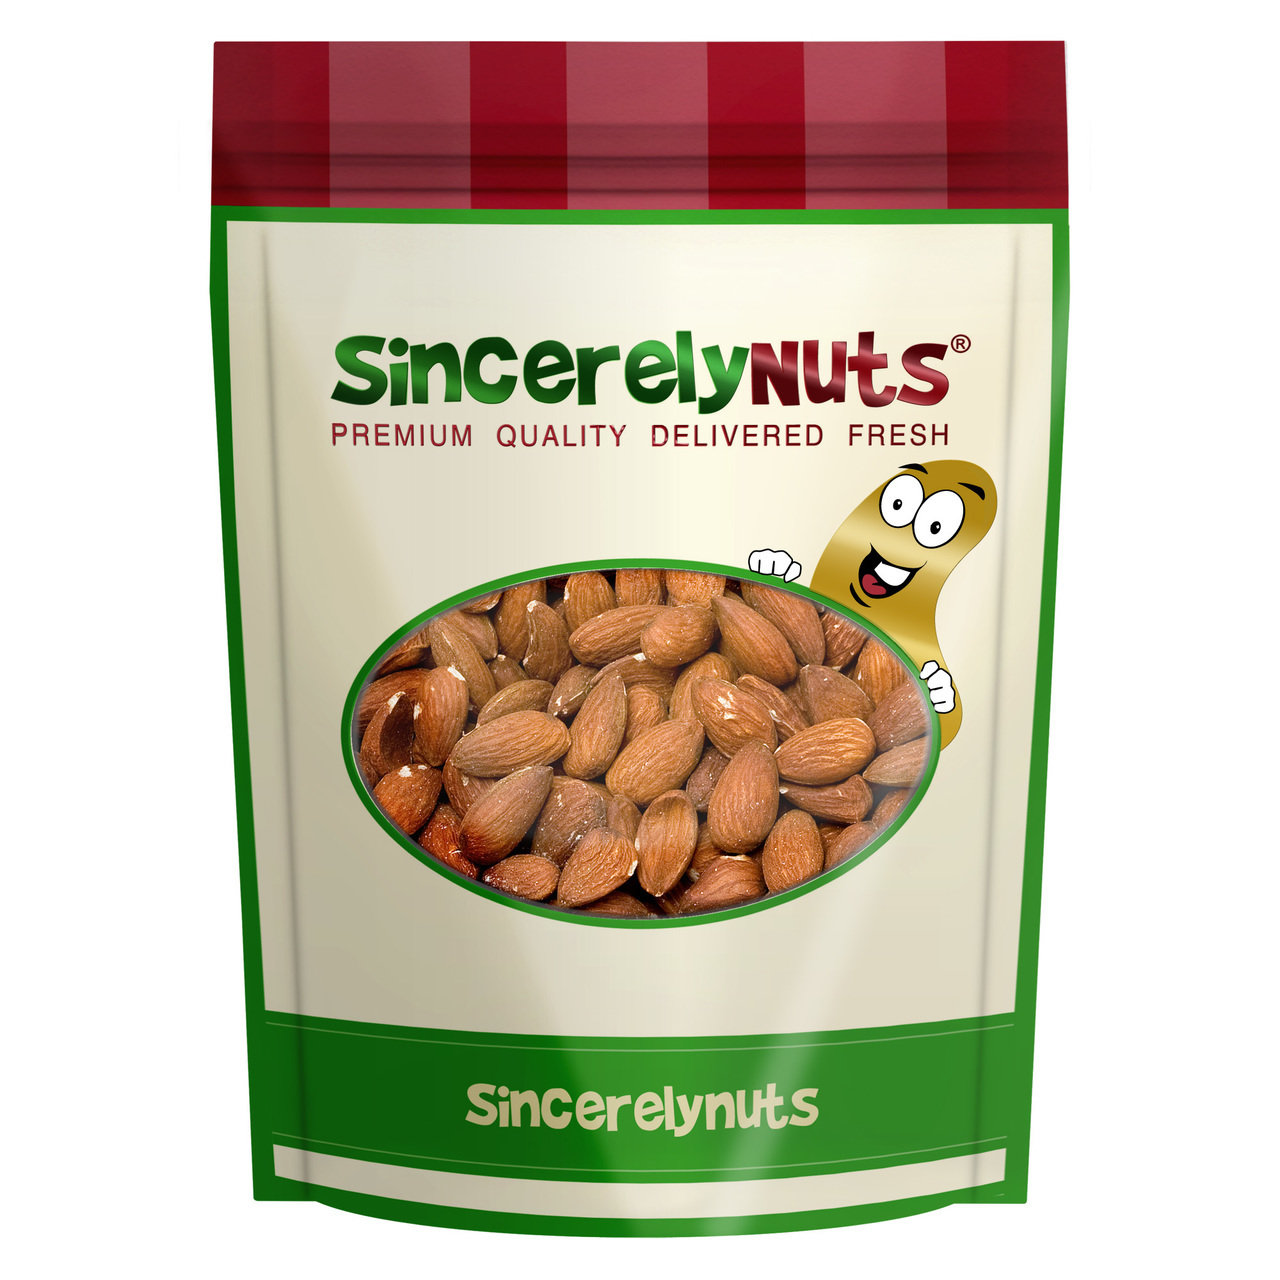 Sincerely Nuts Roasted Unsalted Almonds, 1 LB Bag